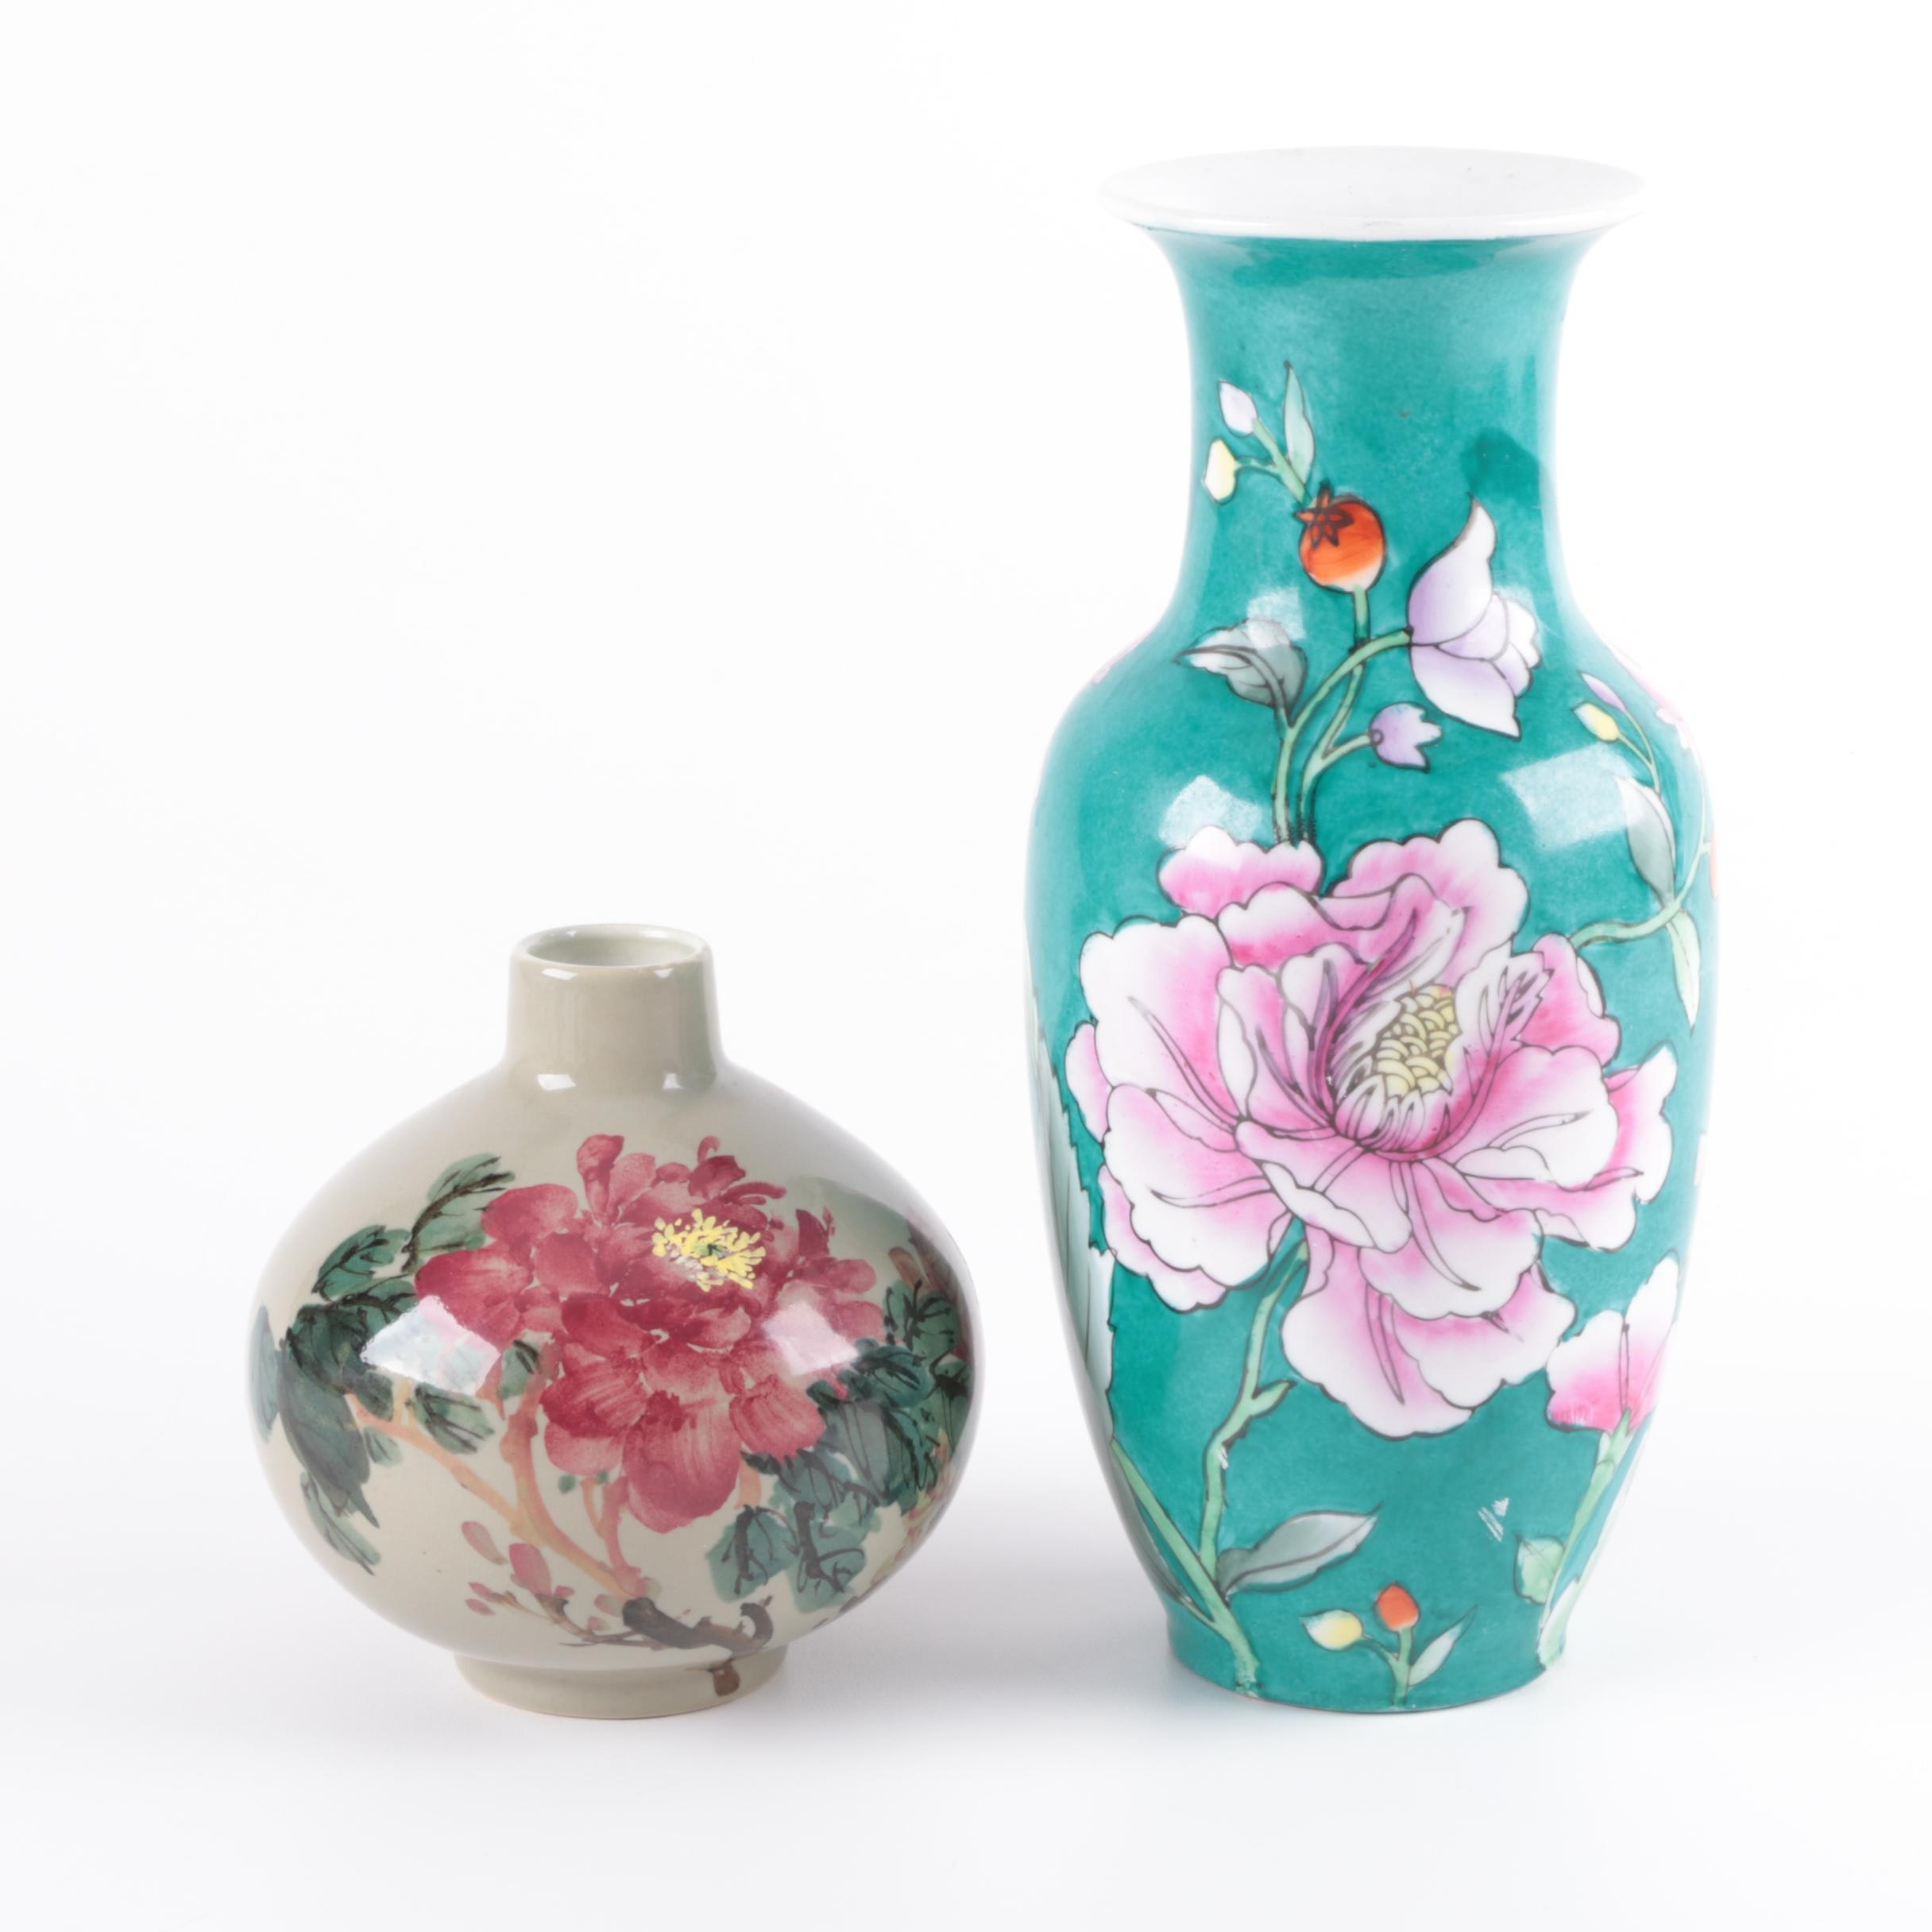 Chinese Floral Themed Ceramic Vases